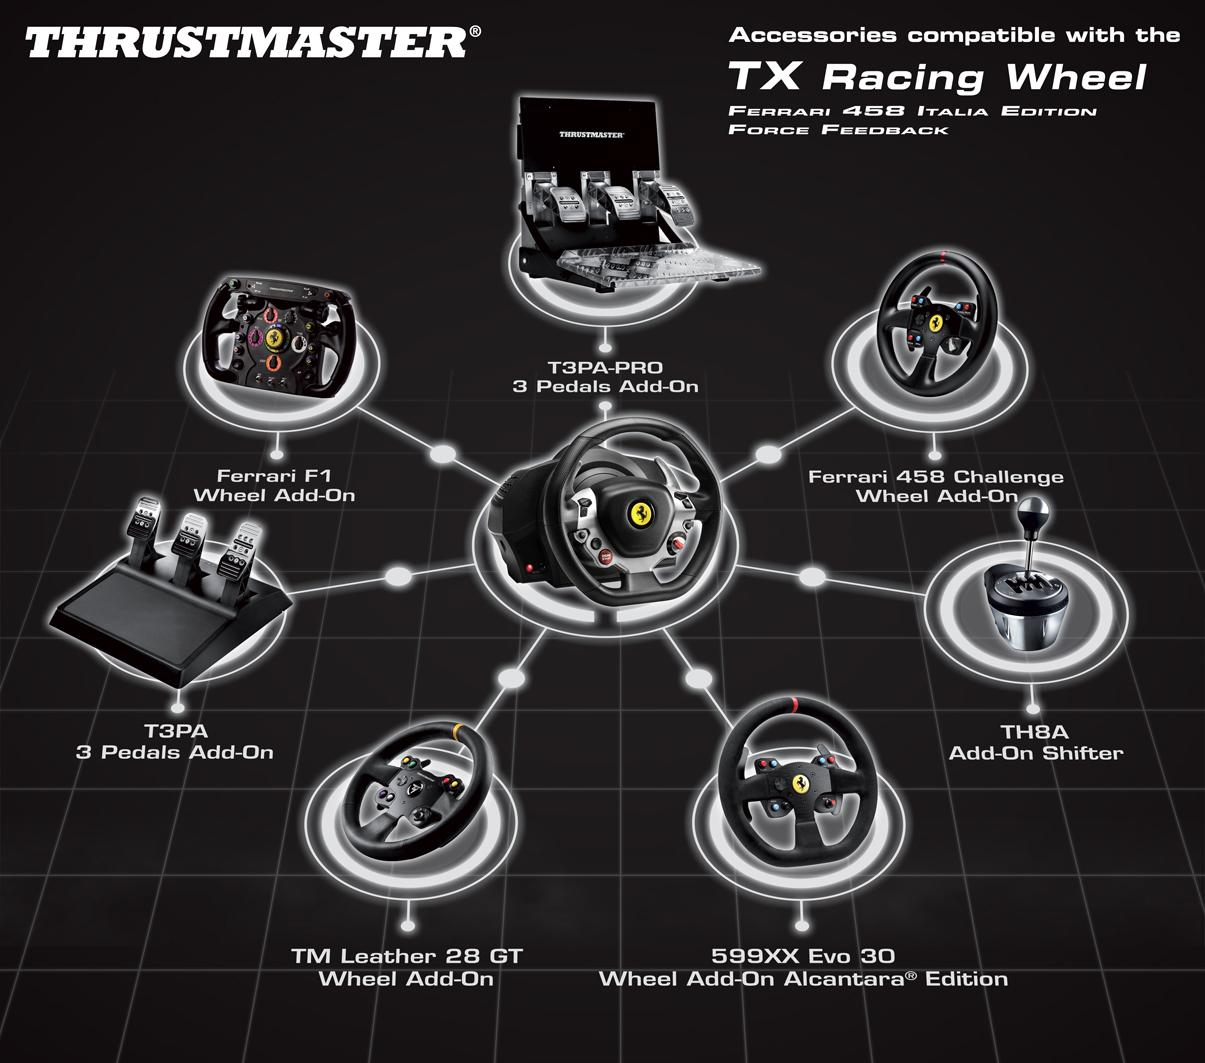 346bb42a 424f 4182 bfab 87e150b5adff amazon com thrustmaster racing wheel servo base for xbox one Tremolo Pedal Diagram Basic at creativeand.co